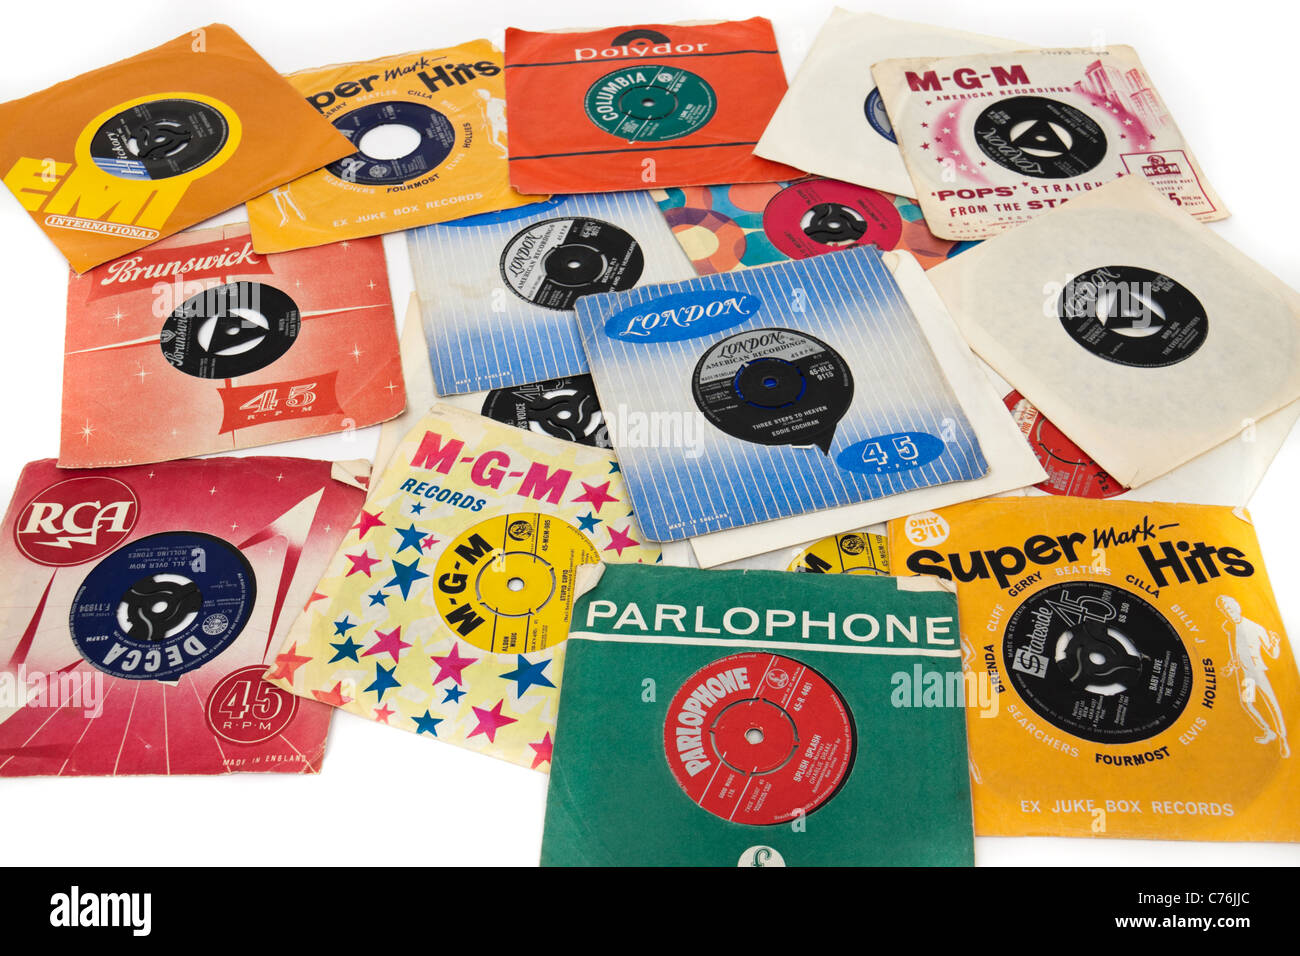 Collection de 1960 vintage 7' vinyl des célibataires / records Photo Stock